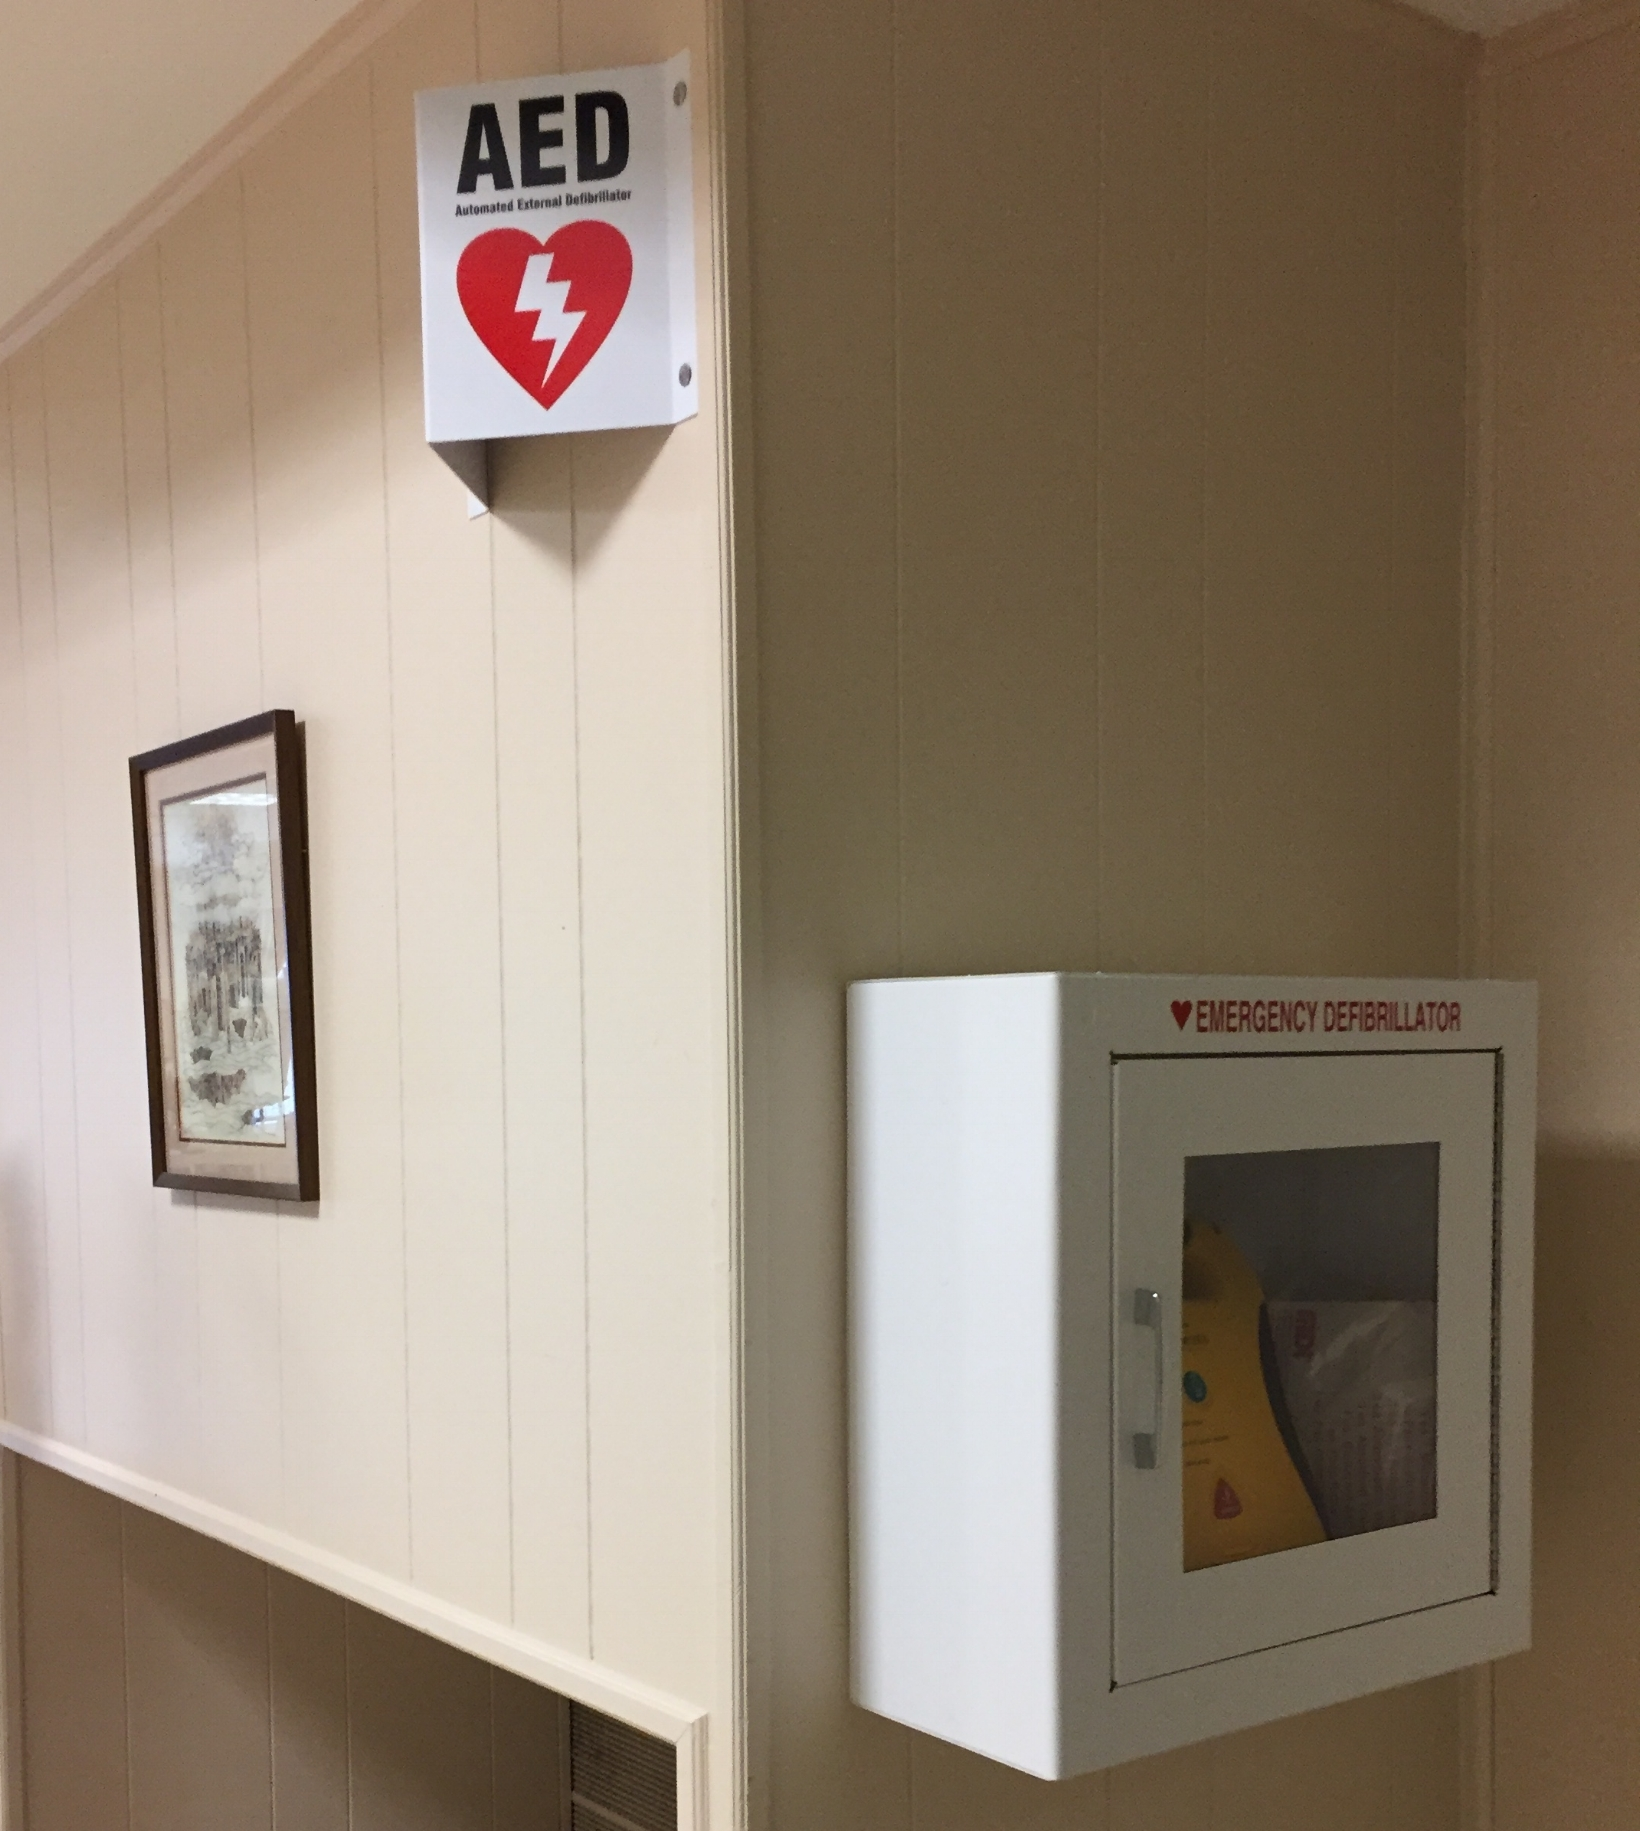 Year of Health - The Beth El Sisterhood has installed an AED (Automated External Defibrillator) in the Social Hall. There is a sign near the bathroom indicating where the AED is located. It is our fervent prayer this device will never need to be used, but feel confident, that if it is needed and used, it is safe and YOU just might save a life.